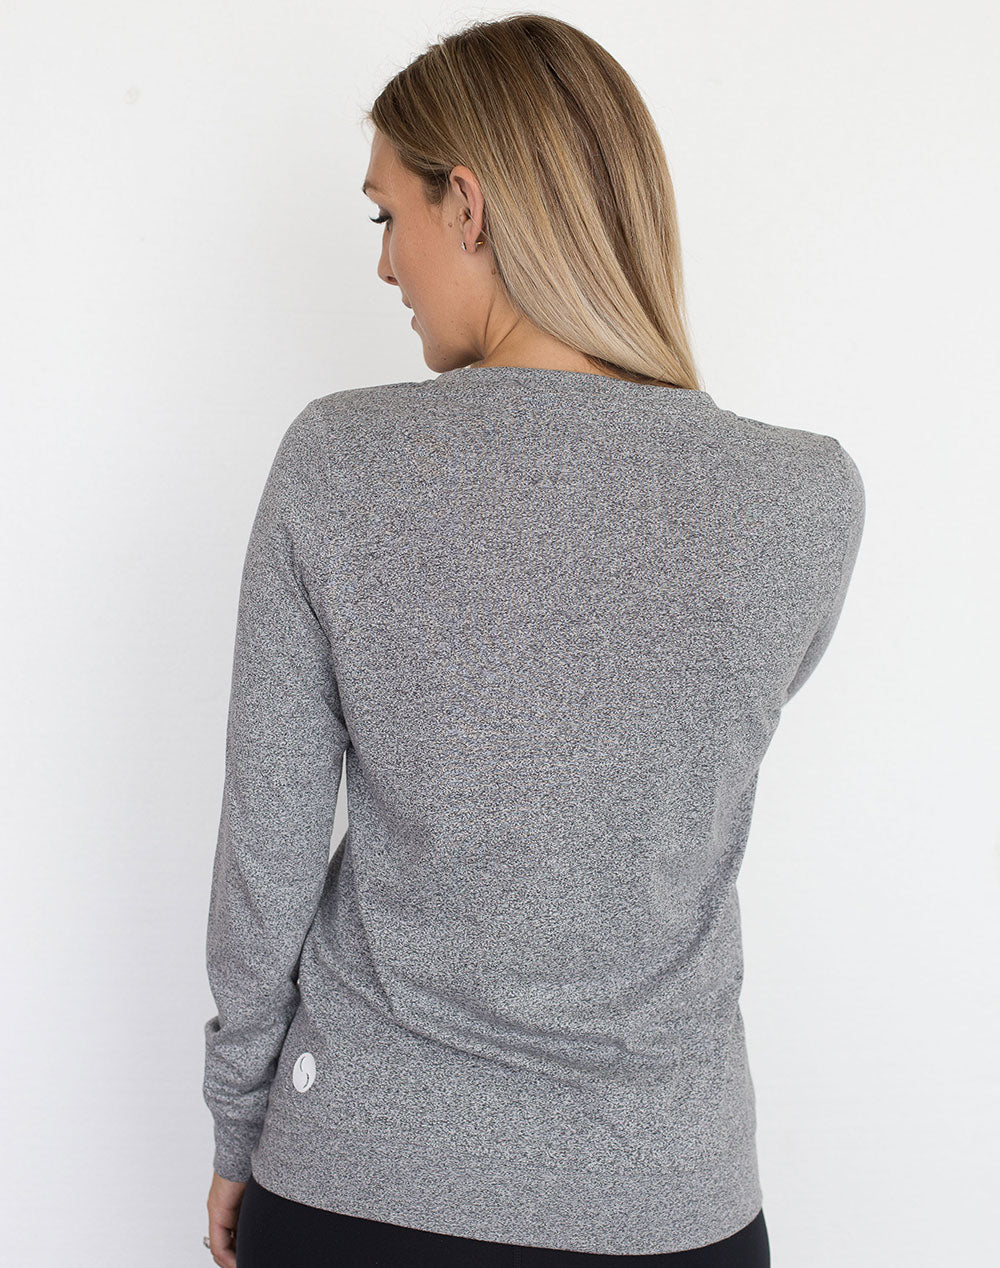 Maternity Top - Crew Neck Jumper Grey